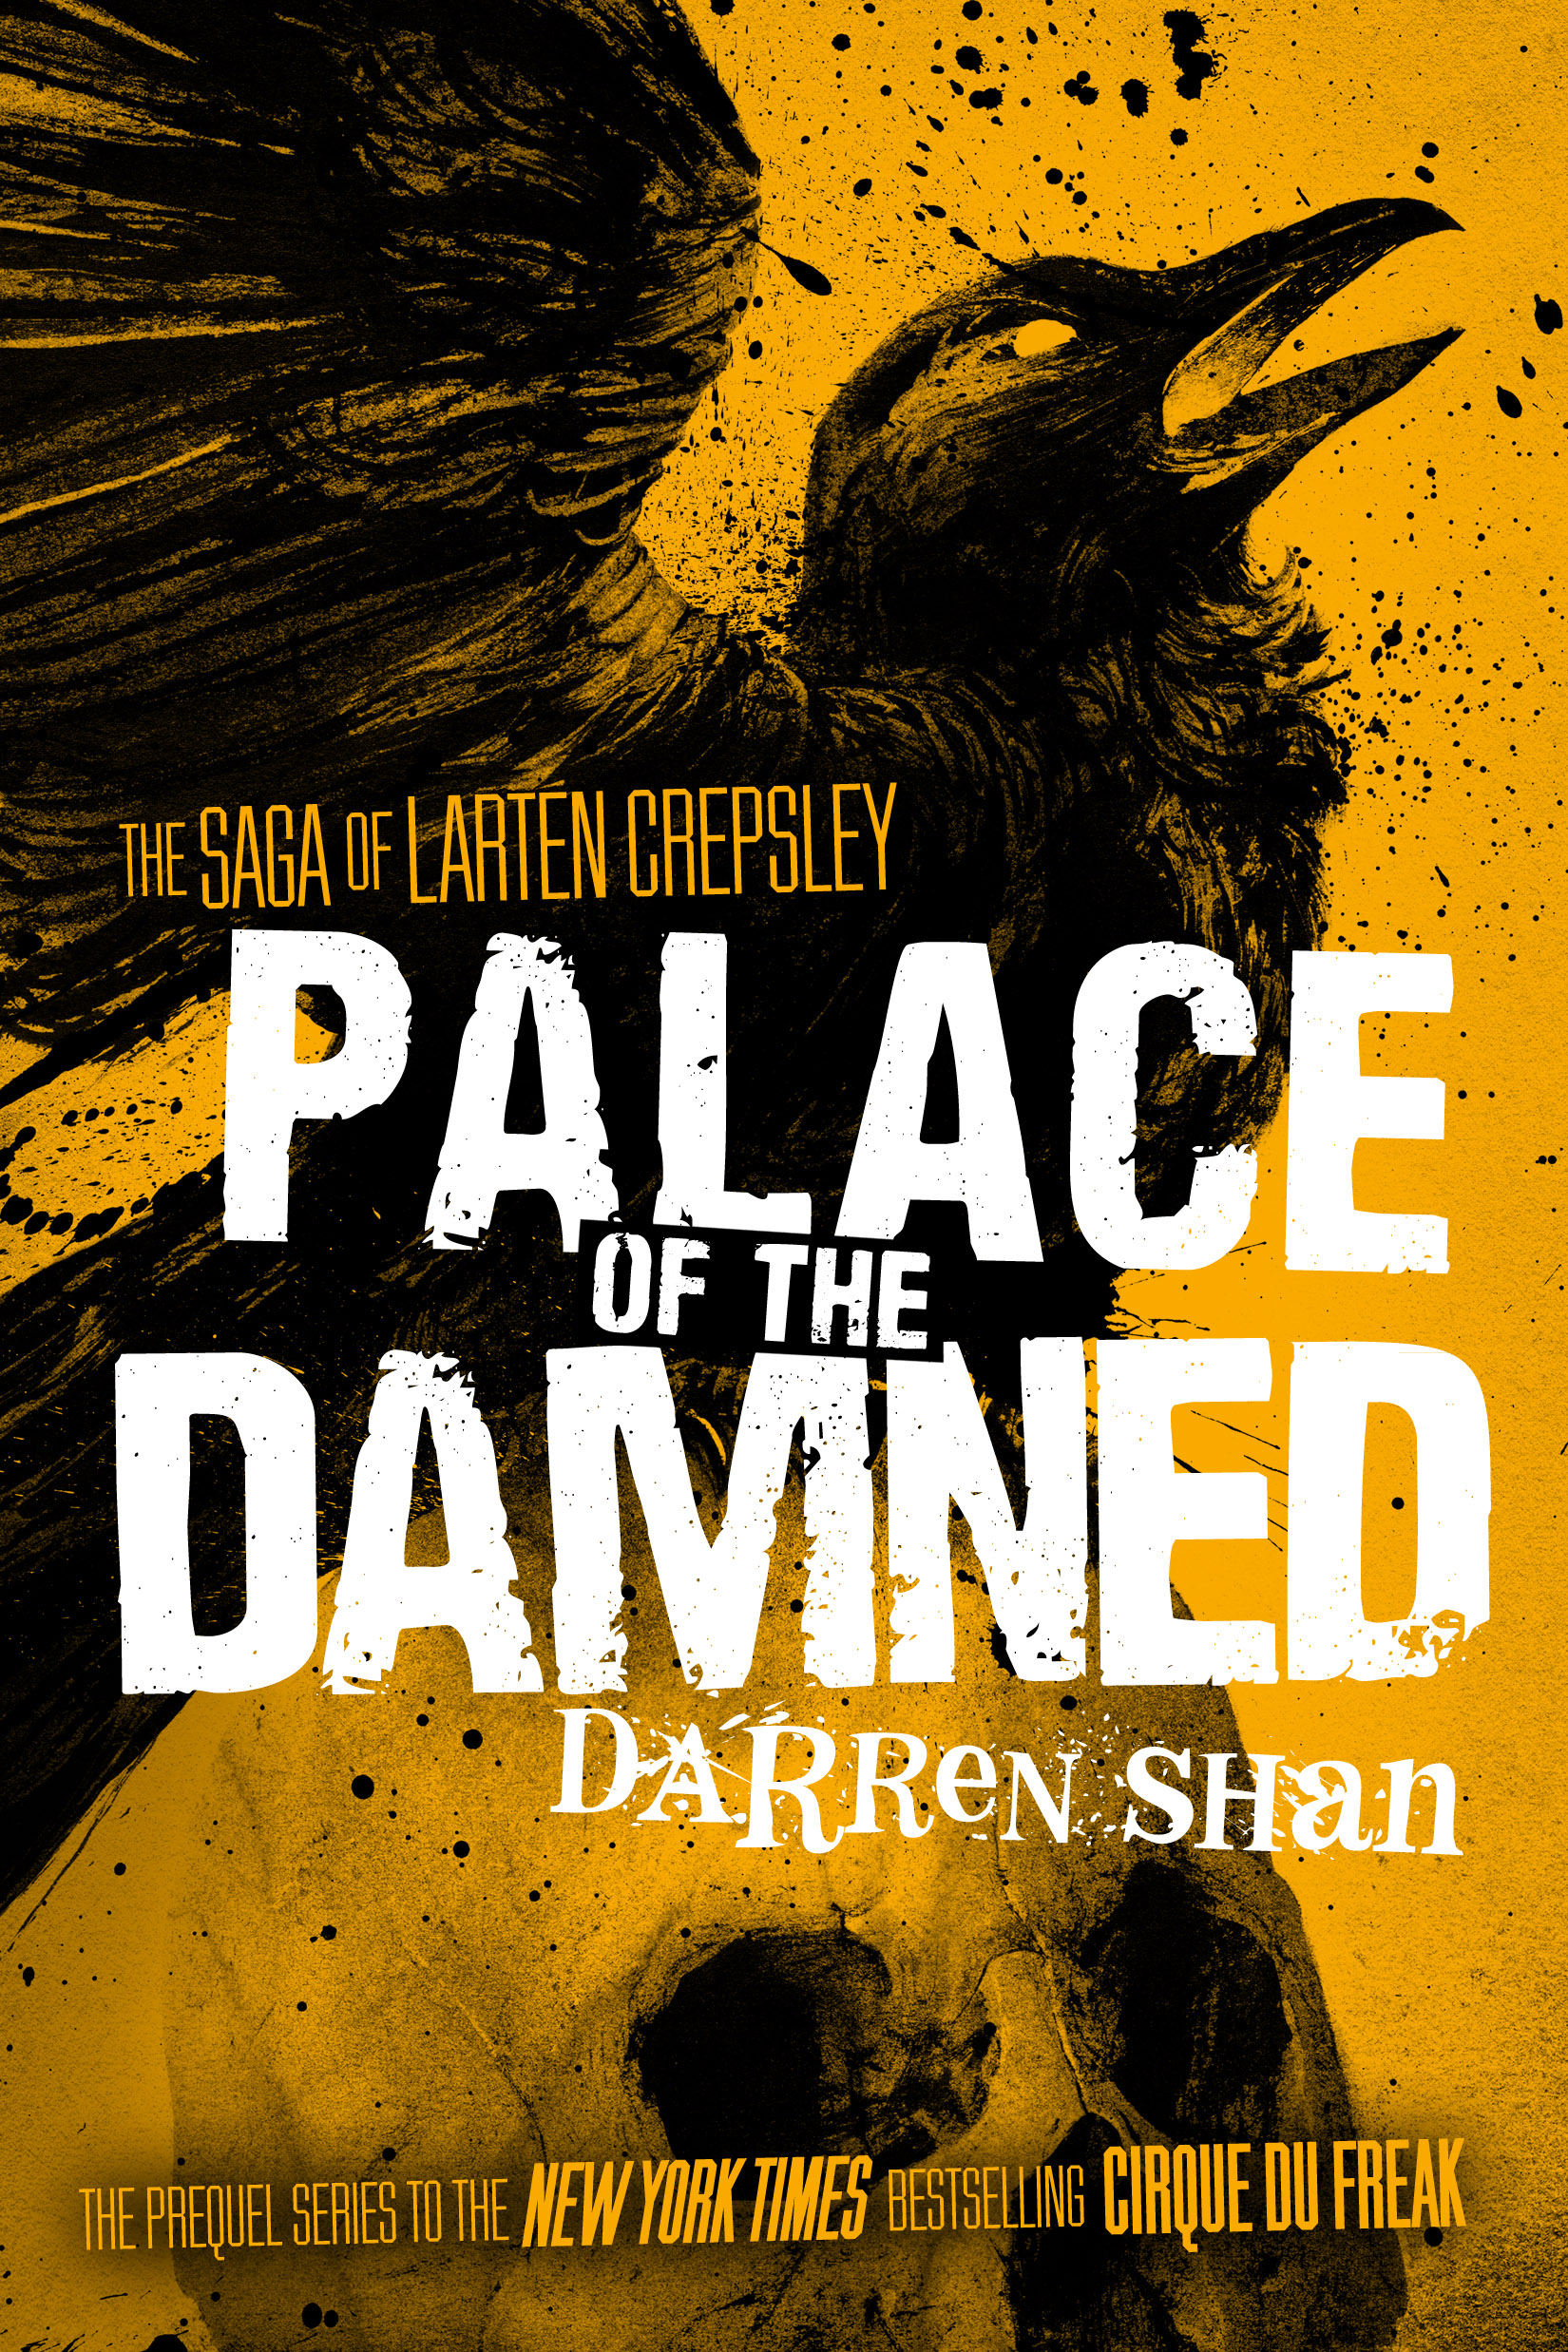 The Saga of Larten Crepsley: Palace of the Damned PB by Darren Shan Designed by Ben Mautner for Little, Brown Illustrated by Sam Weber